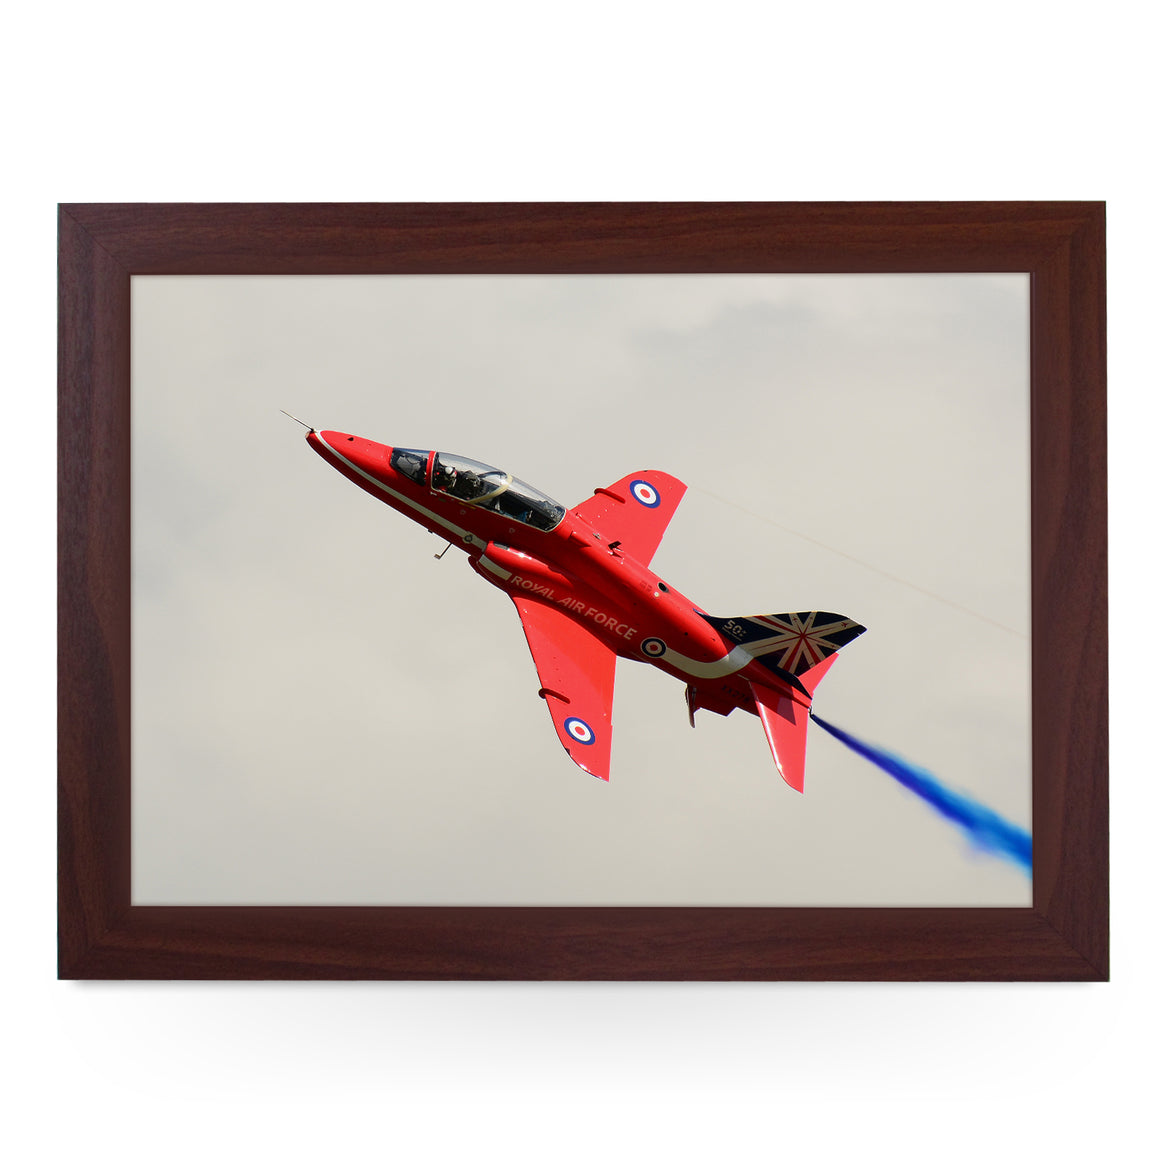 BAE Red Arrows Plane Lap Tray - AD14823